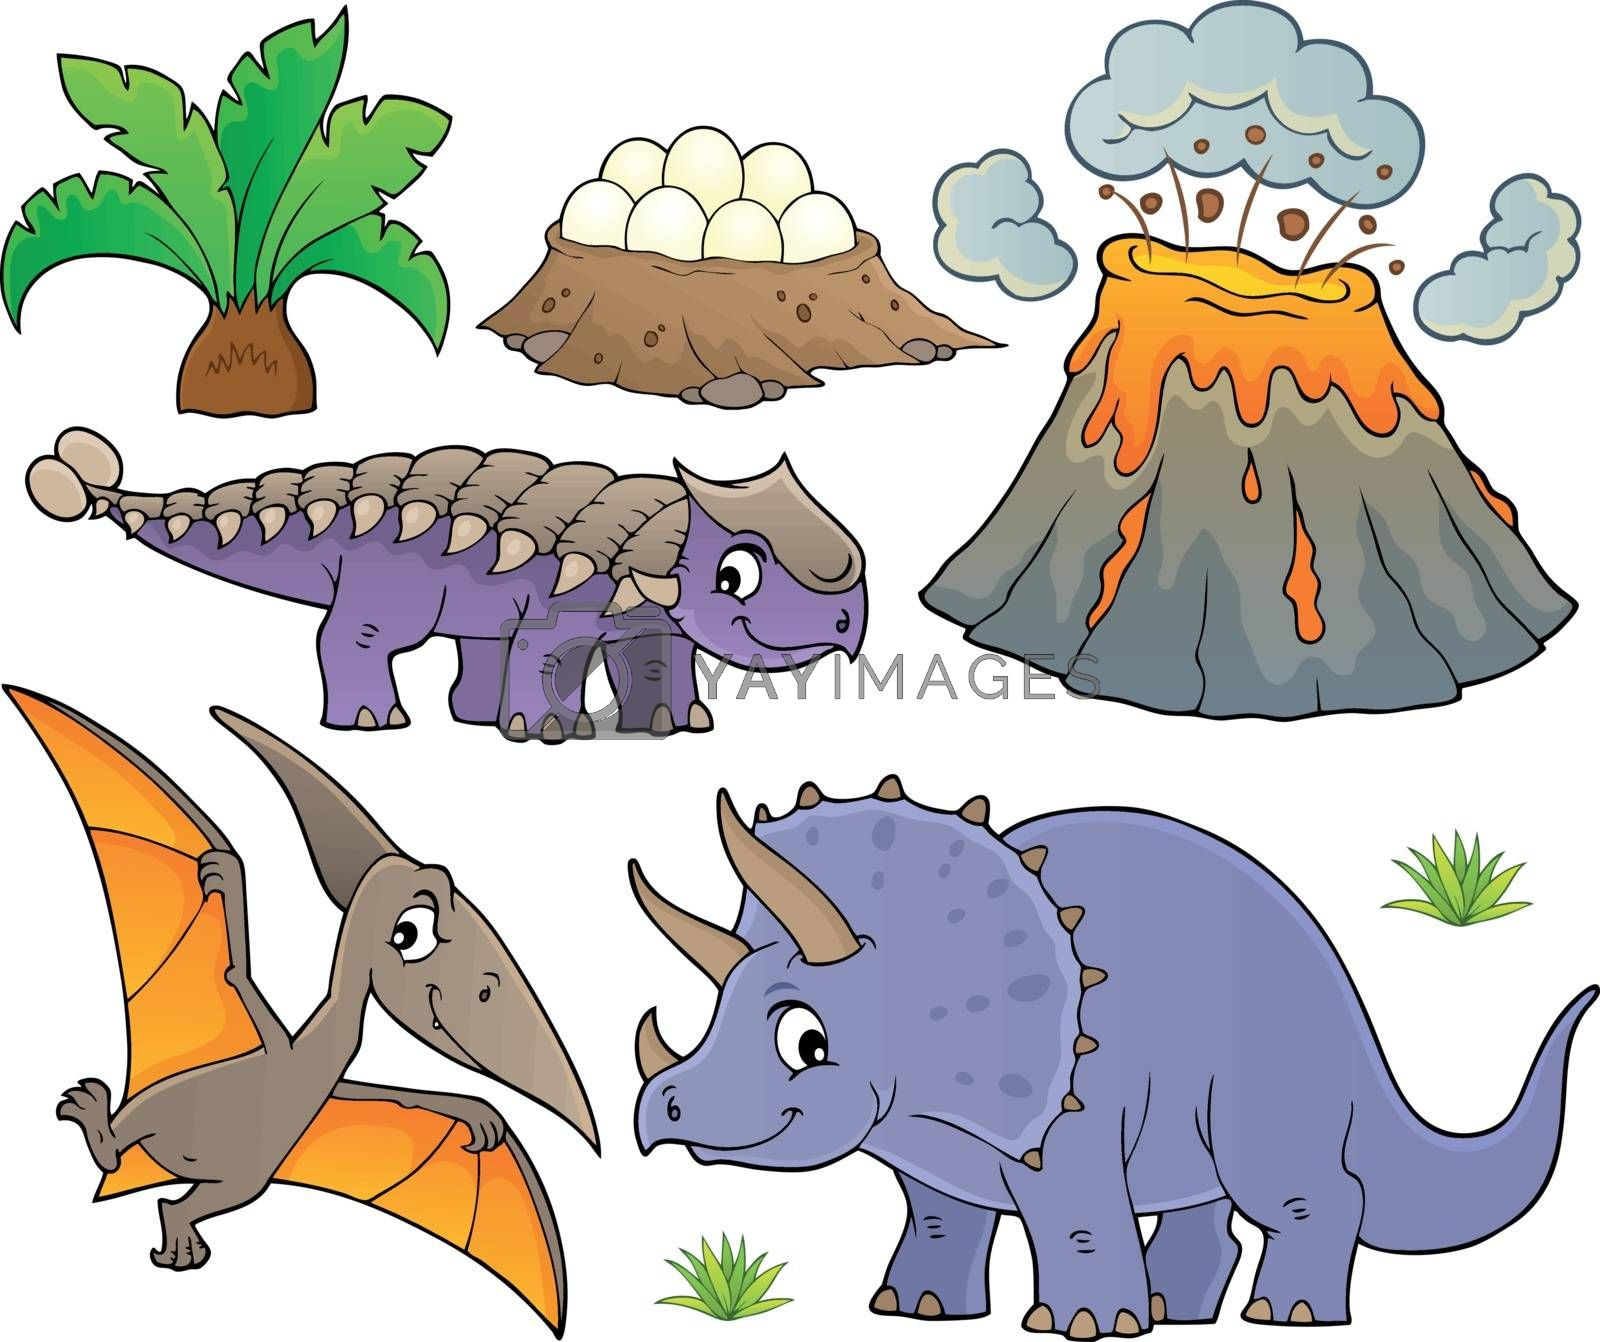 Dinosaur topic set 9 - eps10 vector illustration.